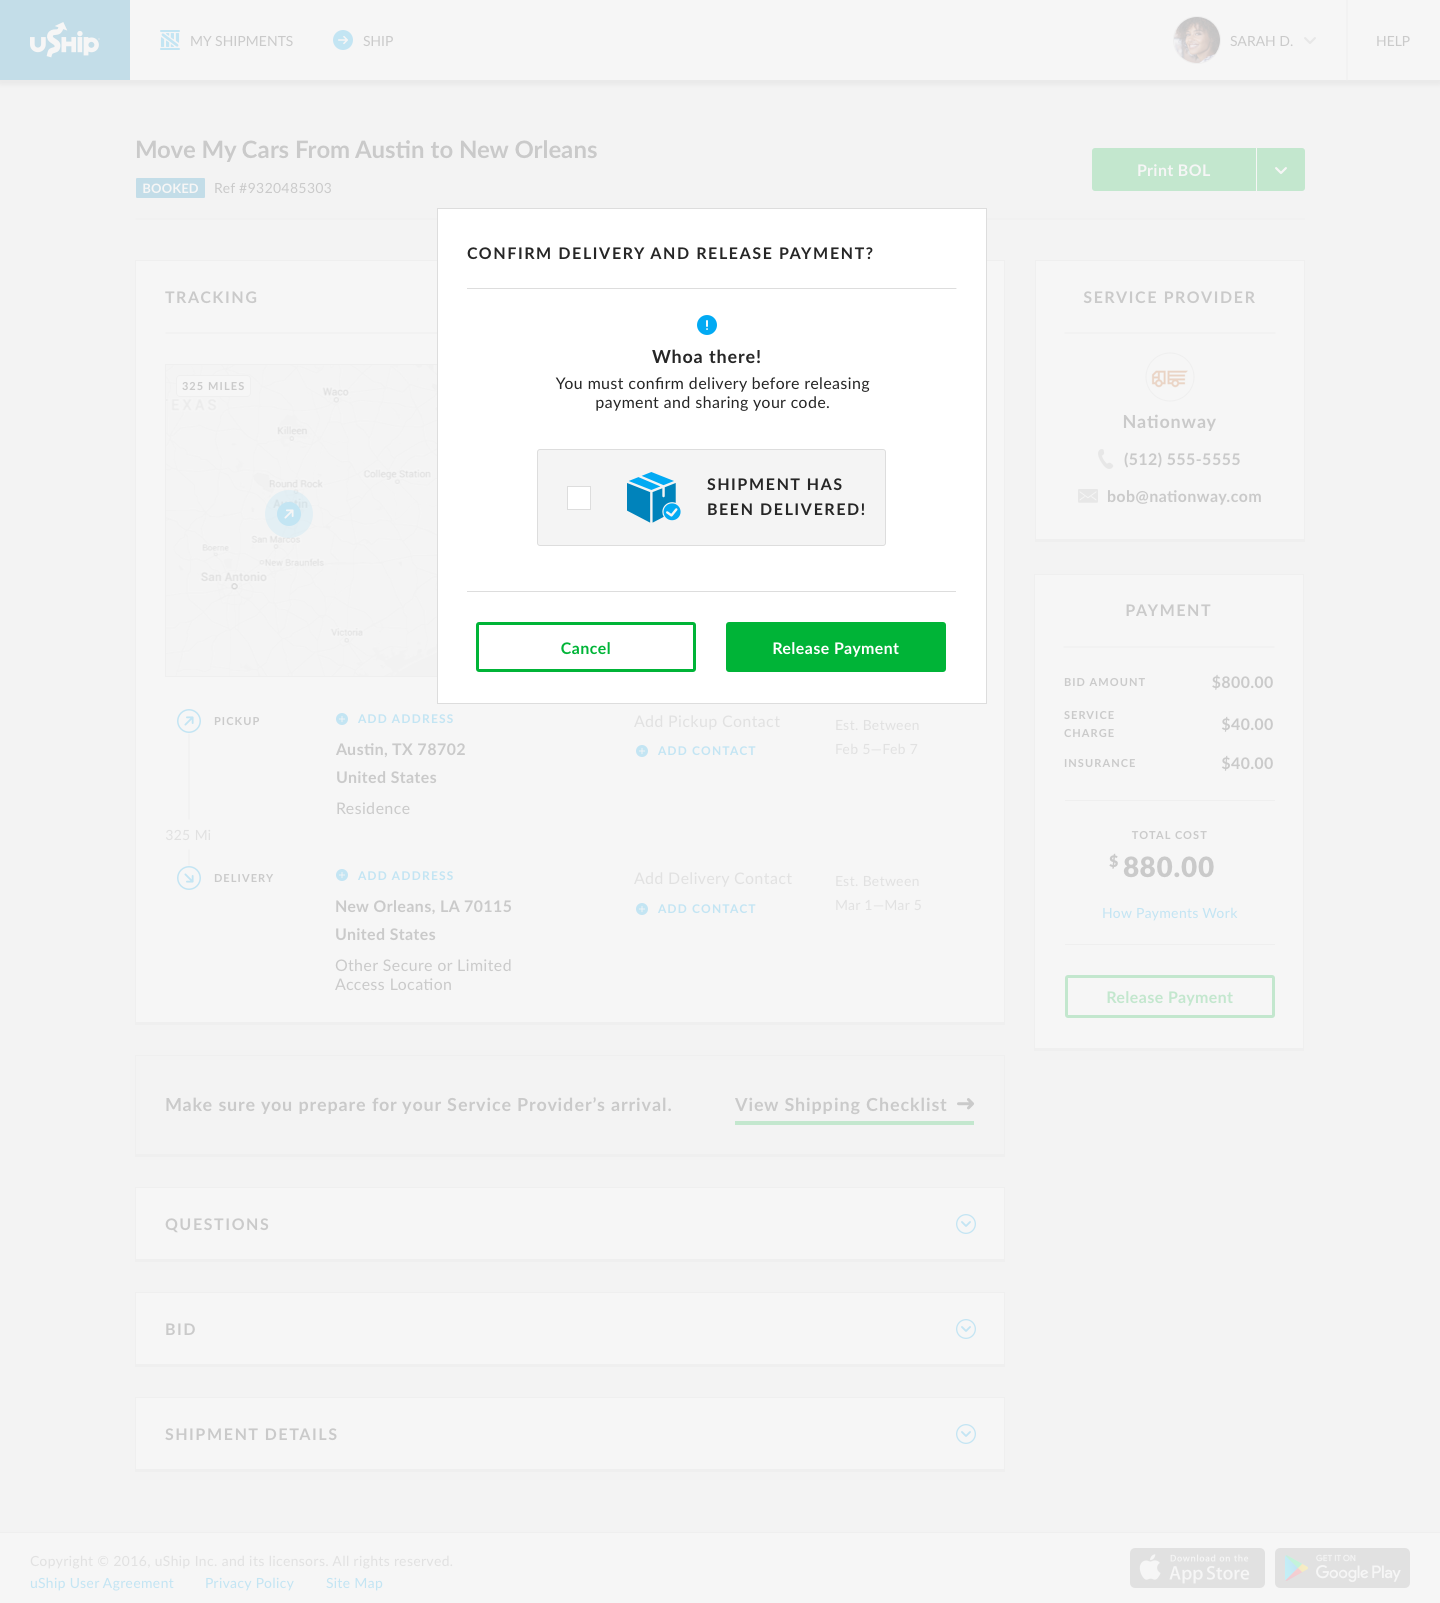 PoM_CS_Release_Payment_Landing_-_Payment_Release_Modal021017.png